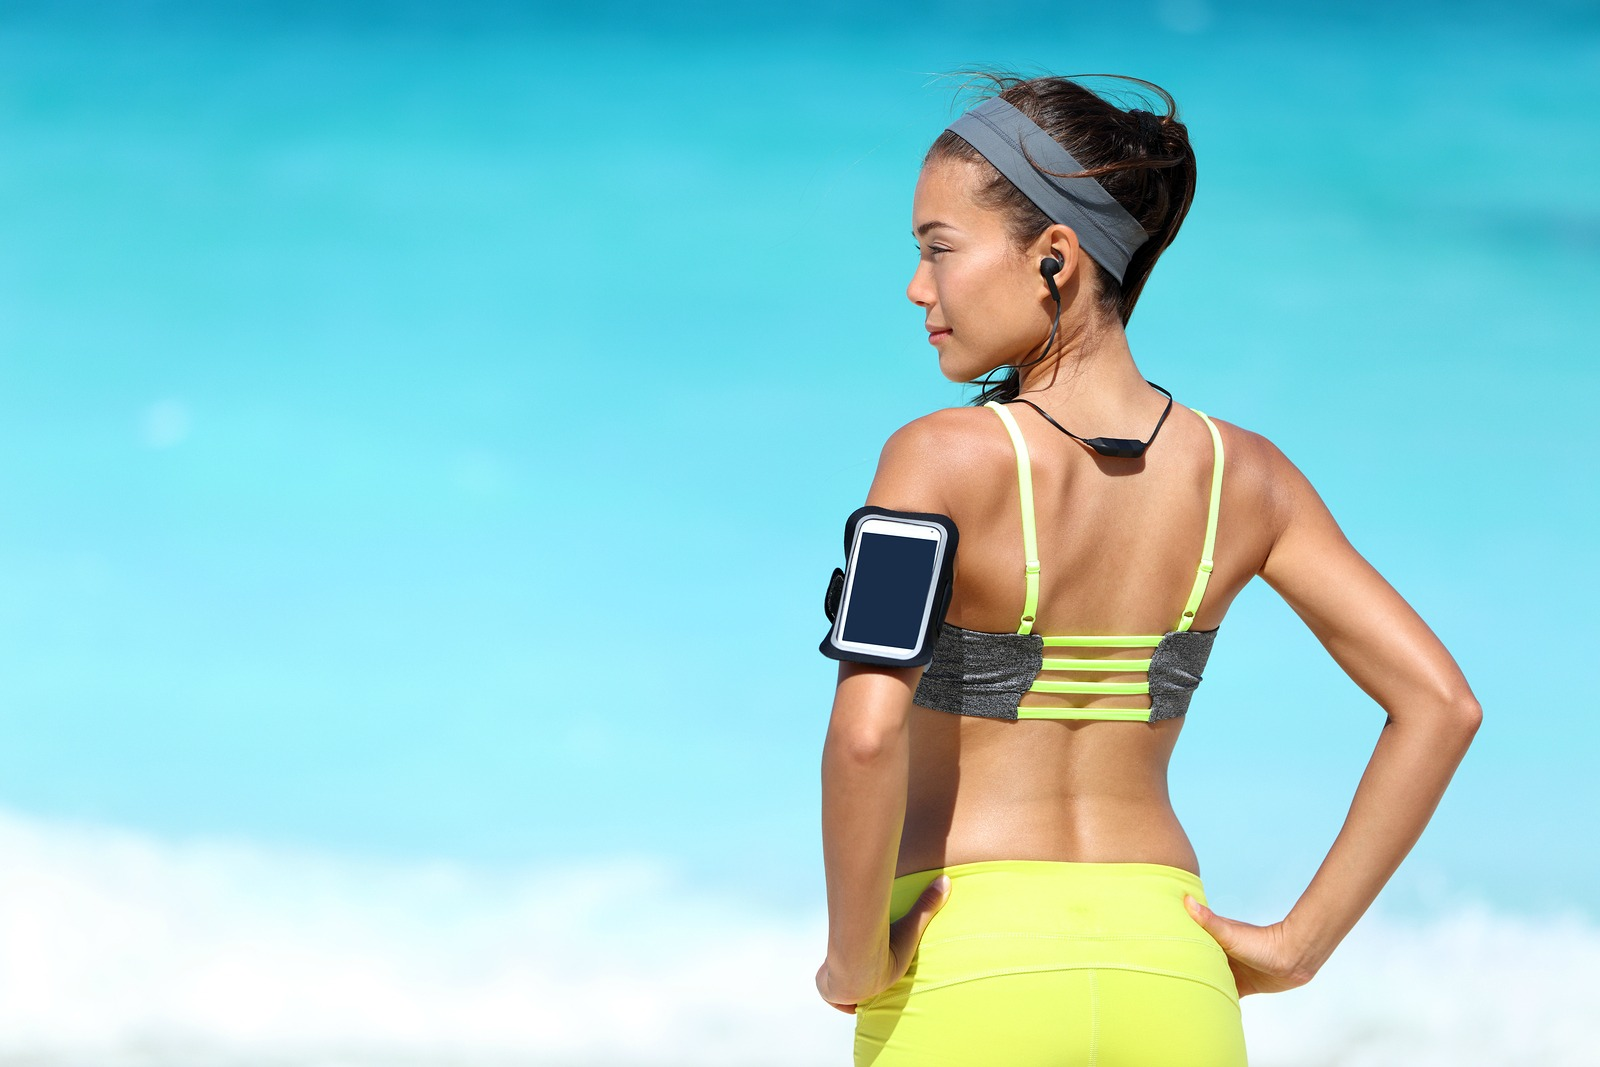 Make your workouts more fun and motivating by changing your music playlist more often and adding in some classic tunes!